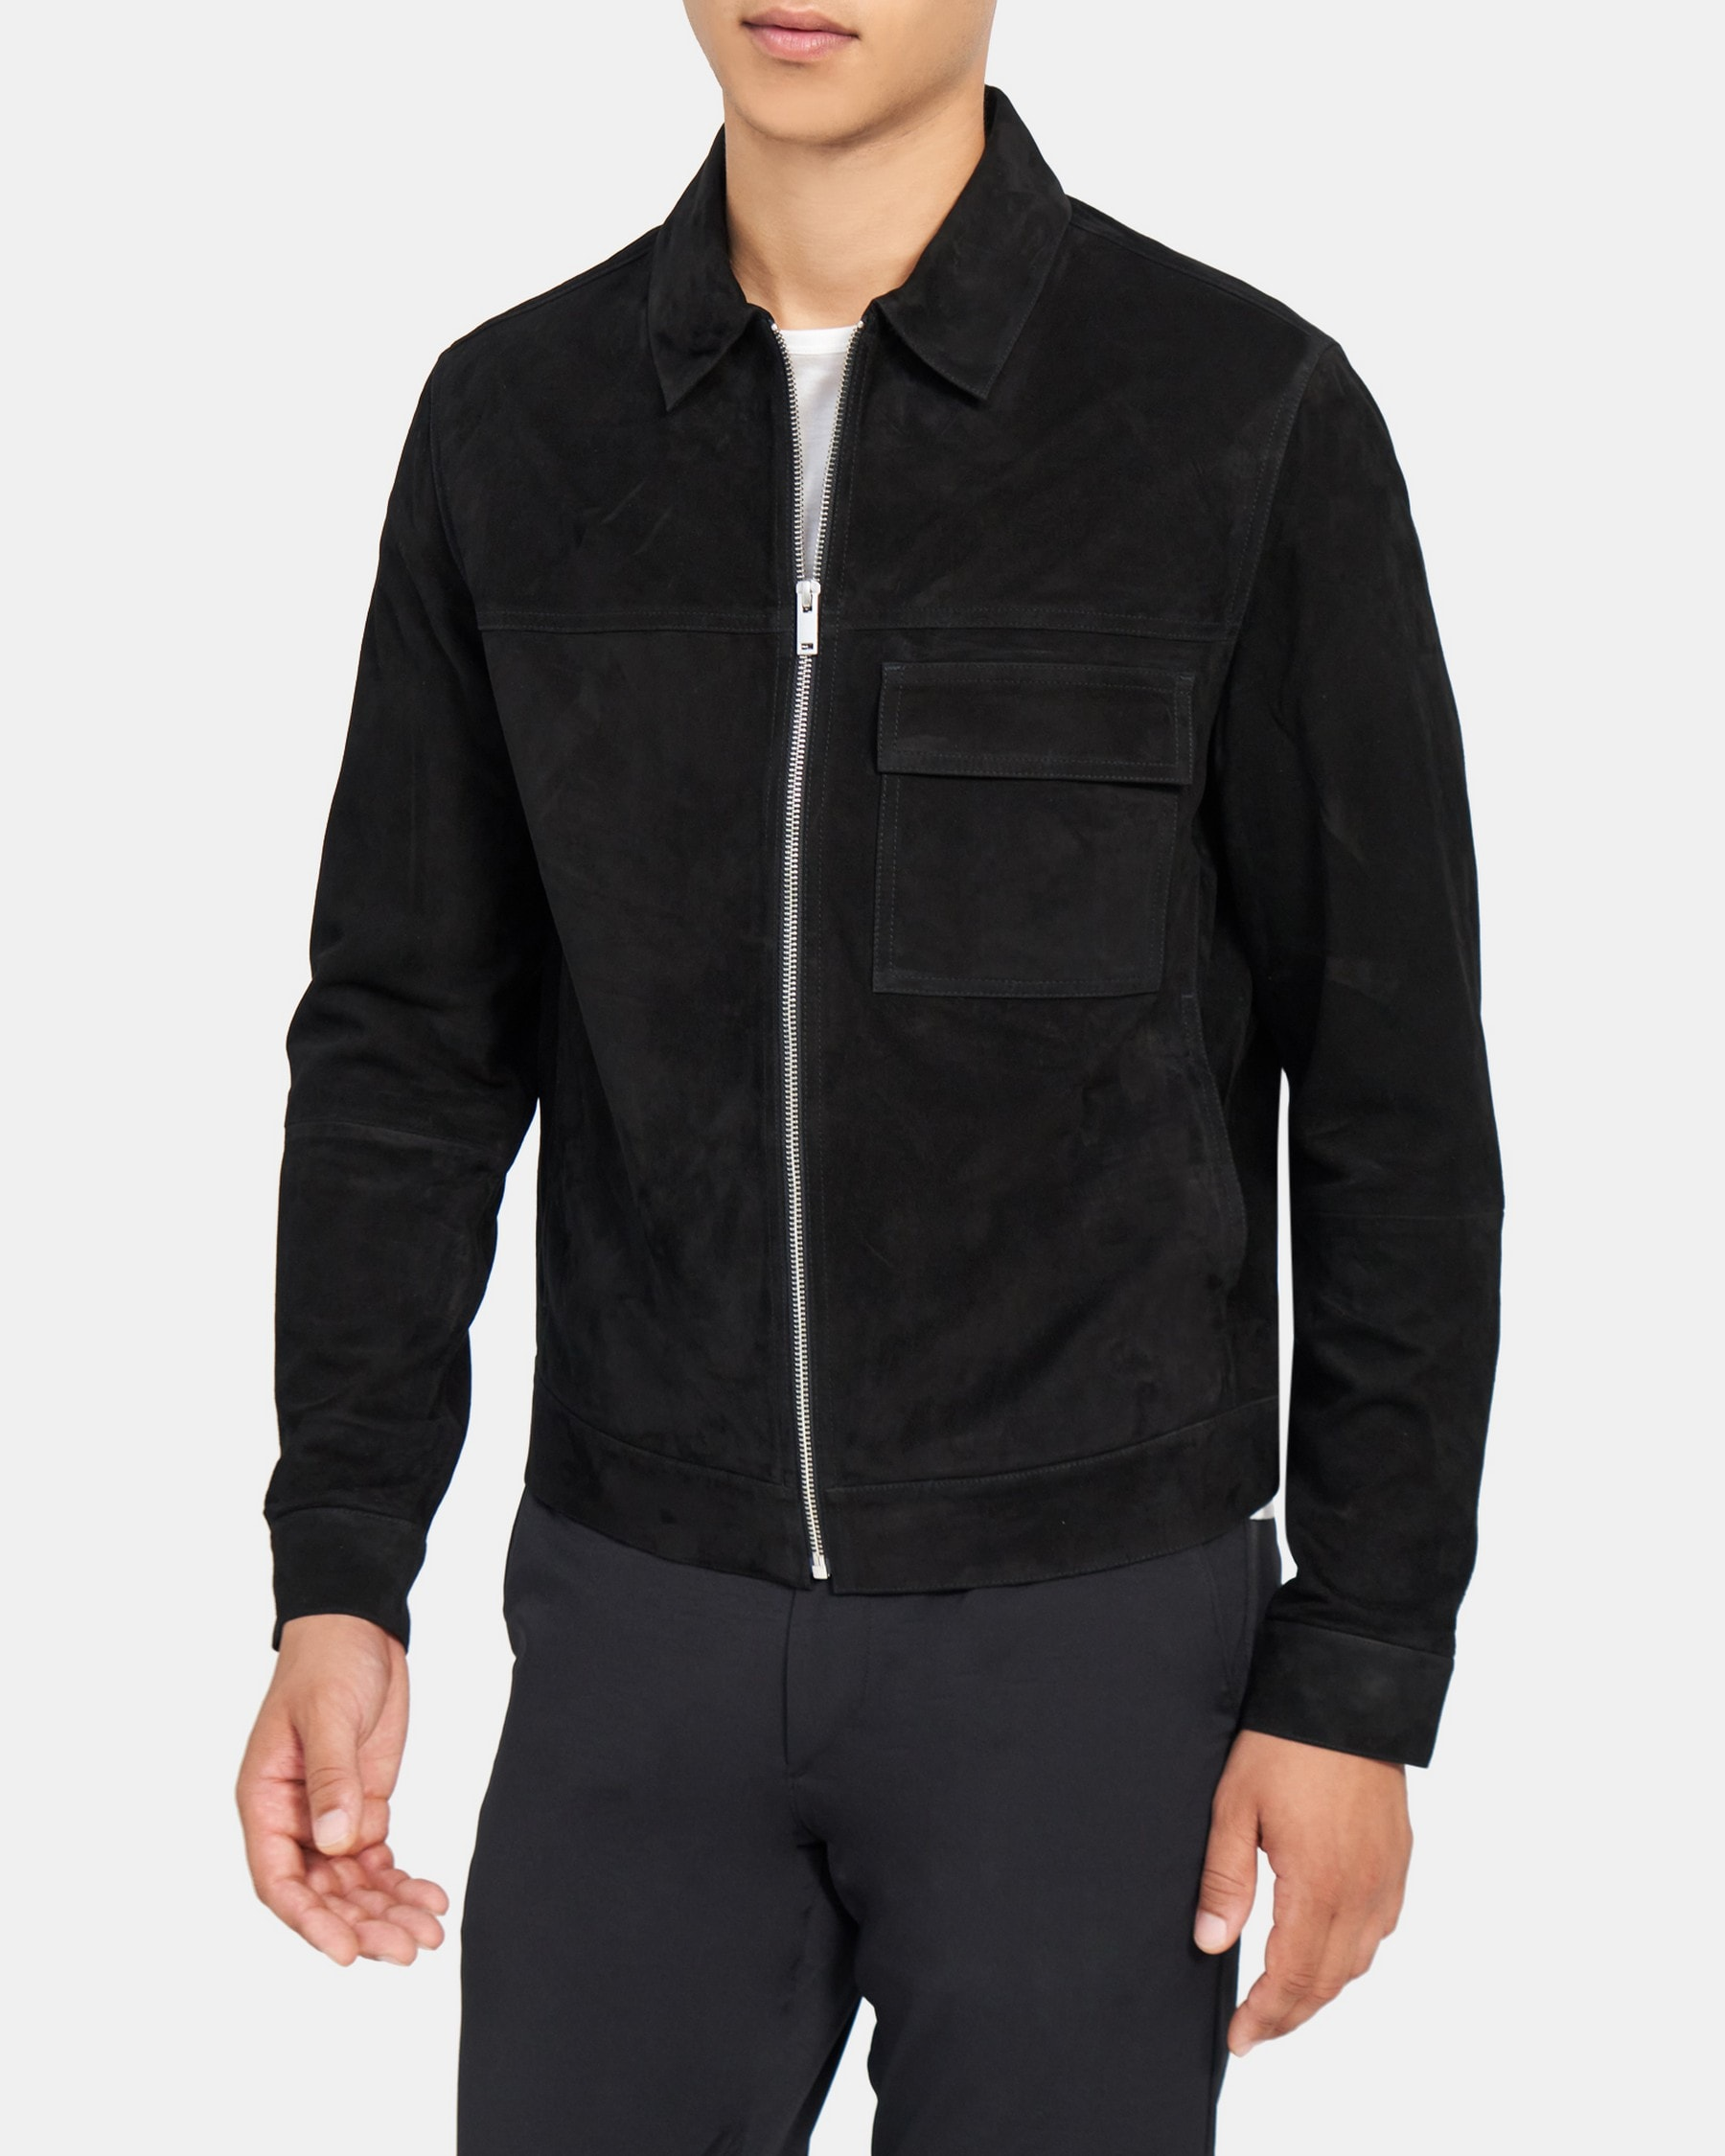 Theory Zip Jacket in Suede